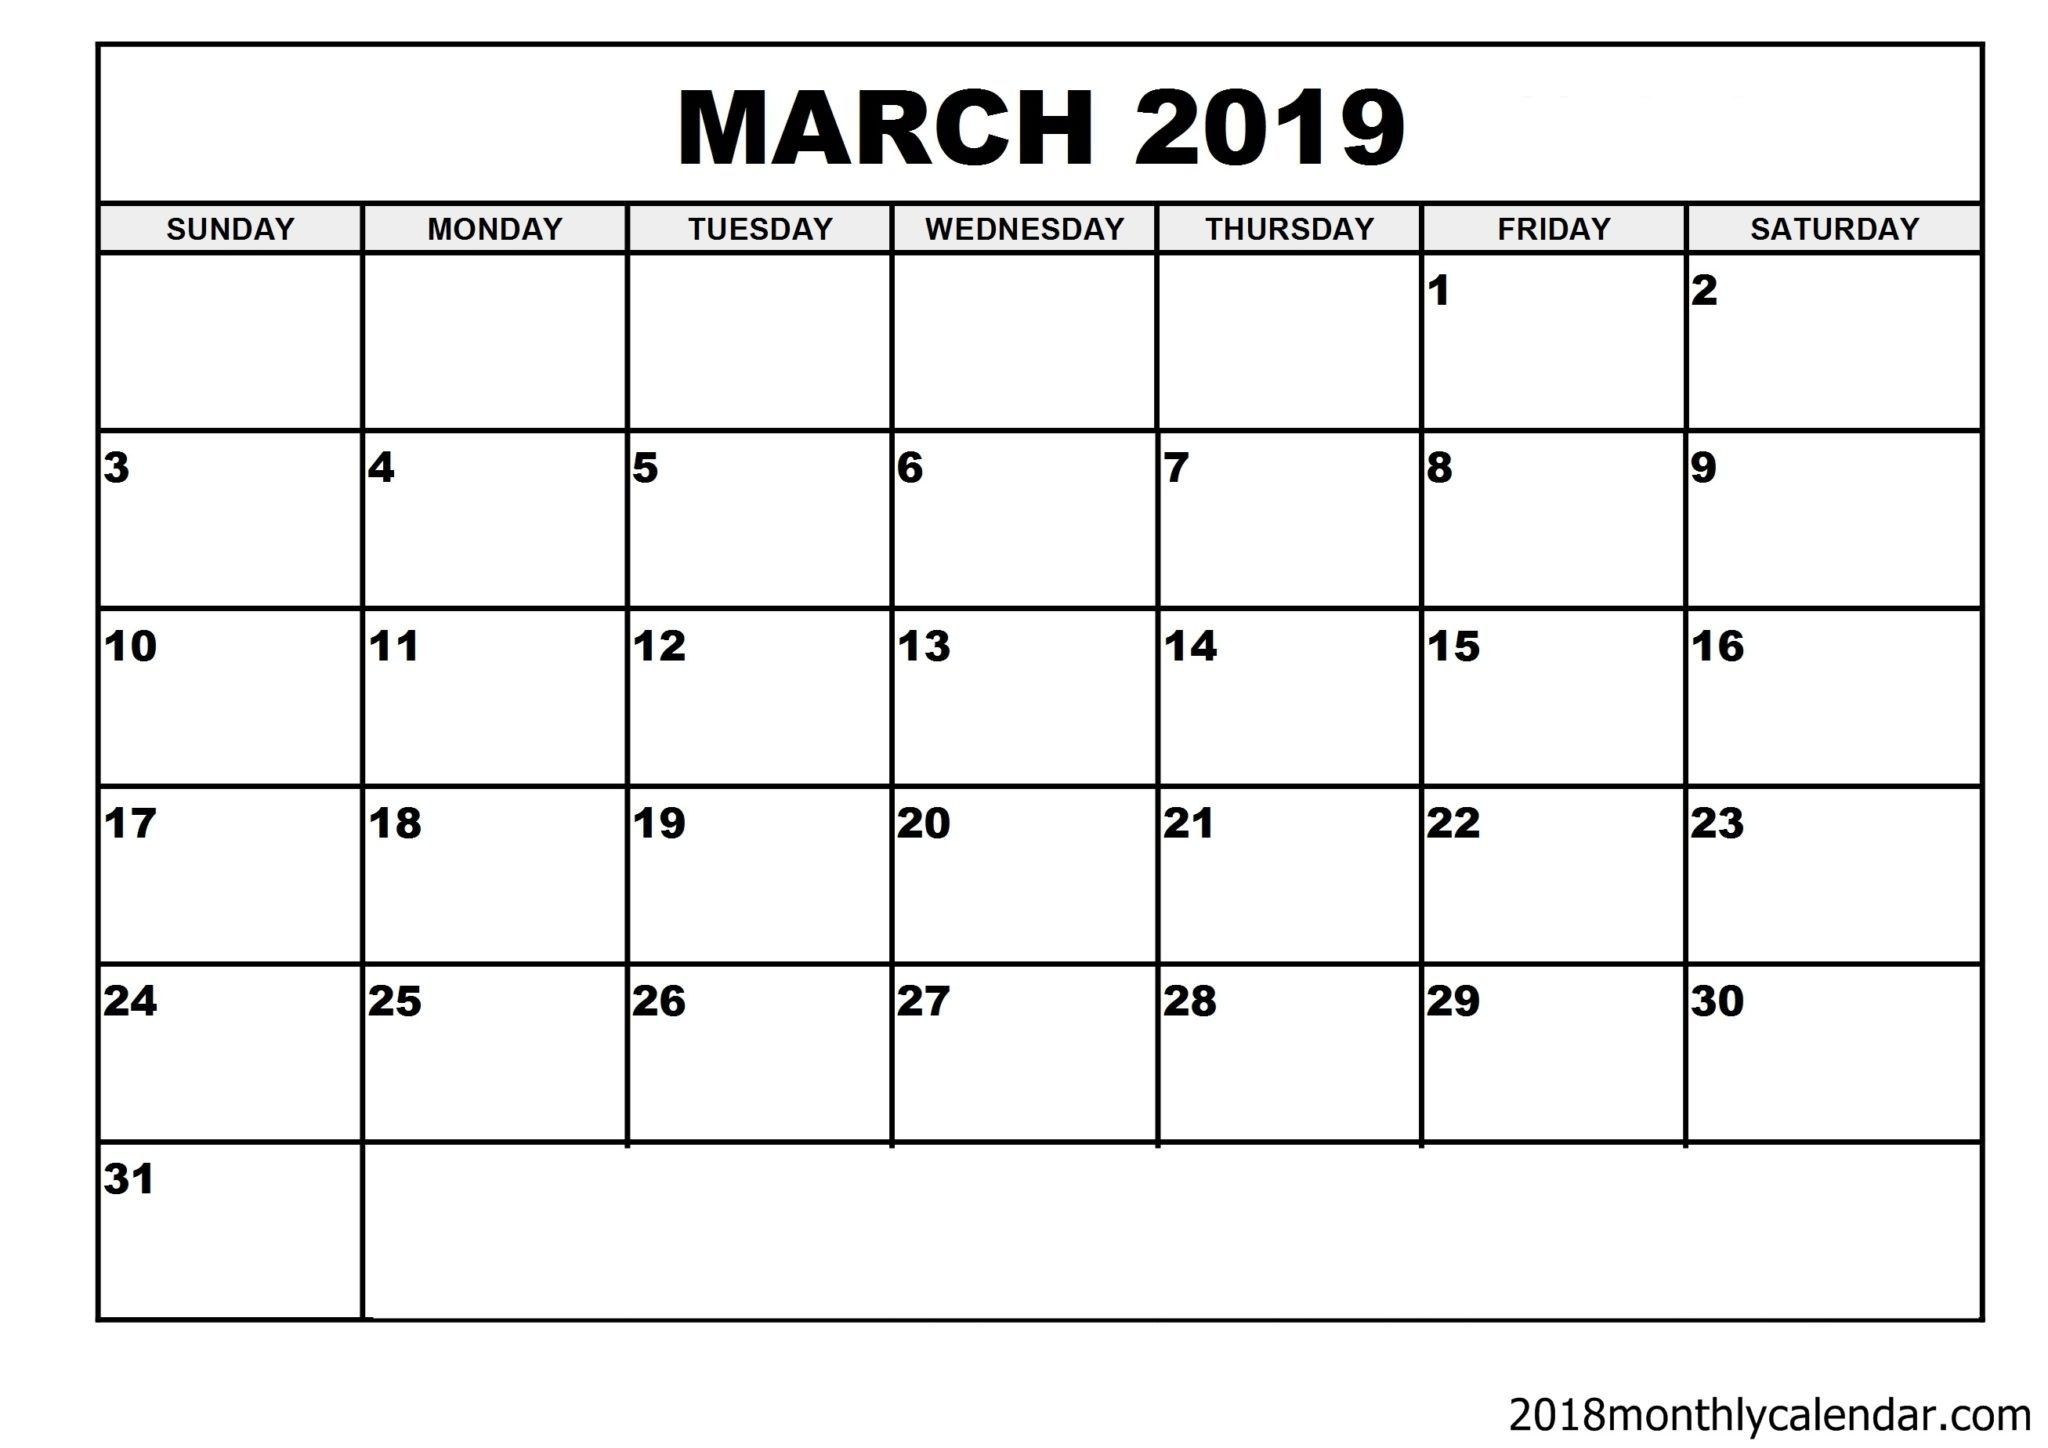 Download March 2019 Calendar – Blank Template - Editable-Calendar Template Fillable Pdf